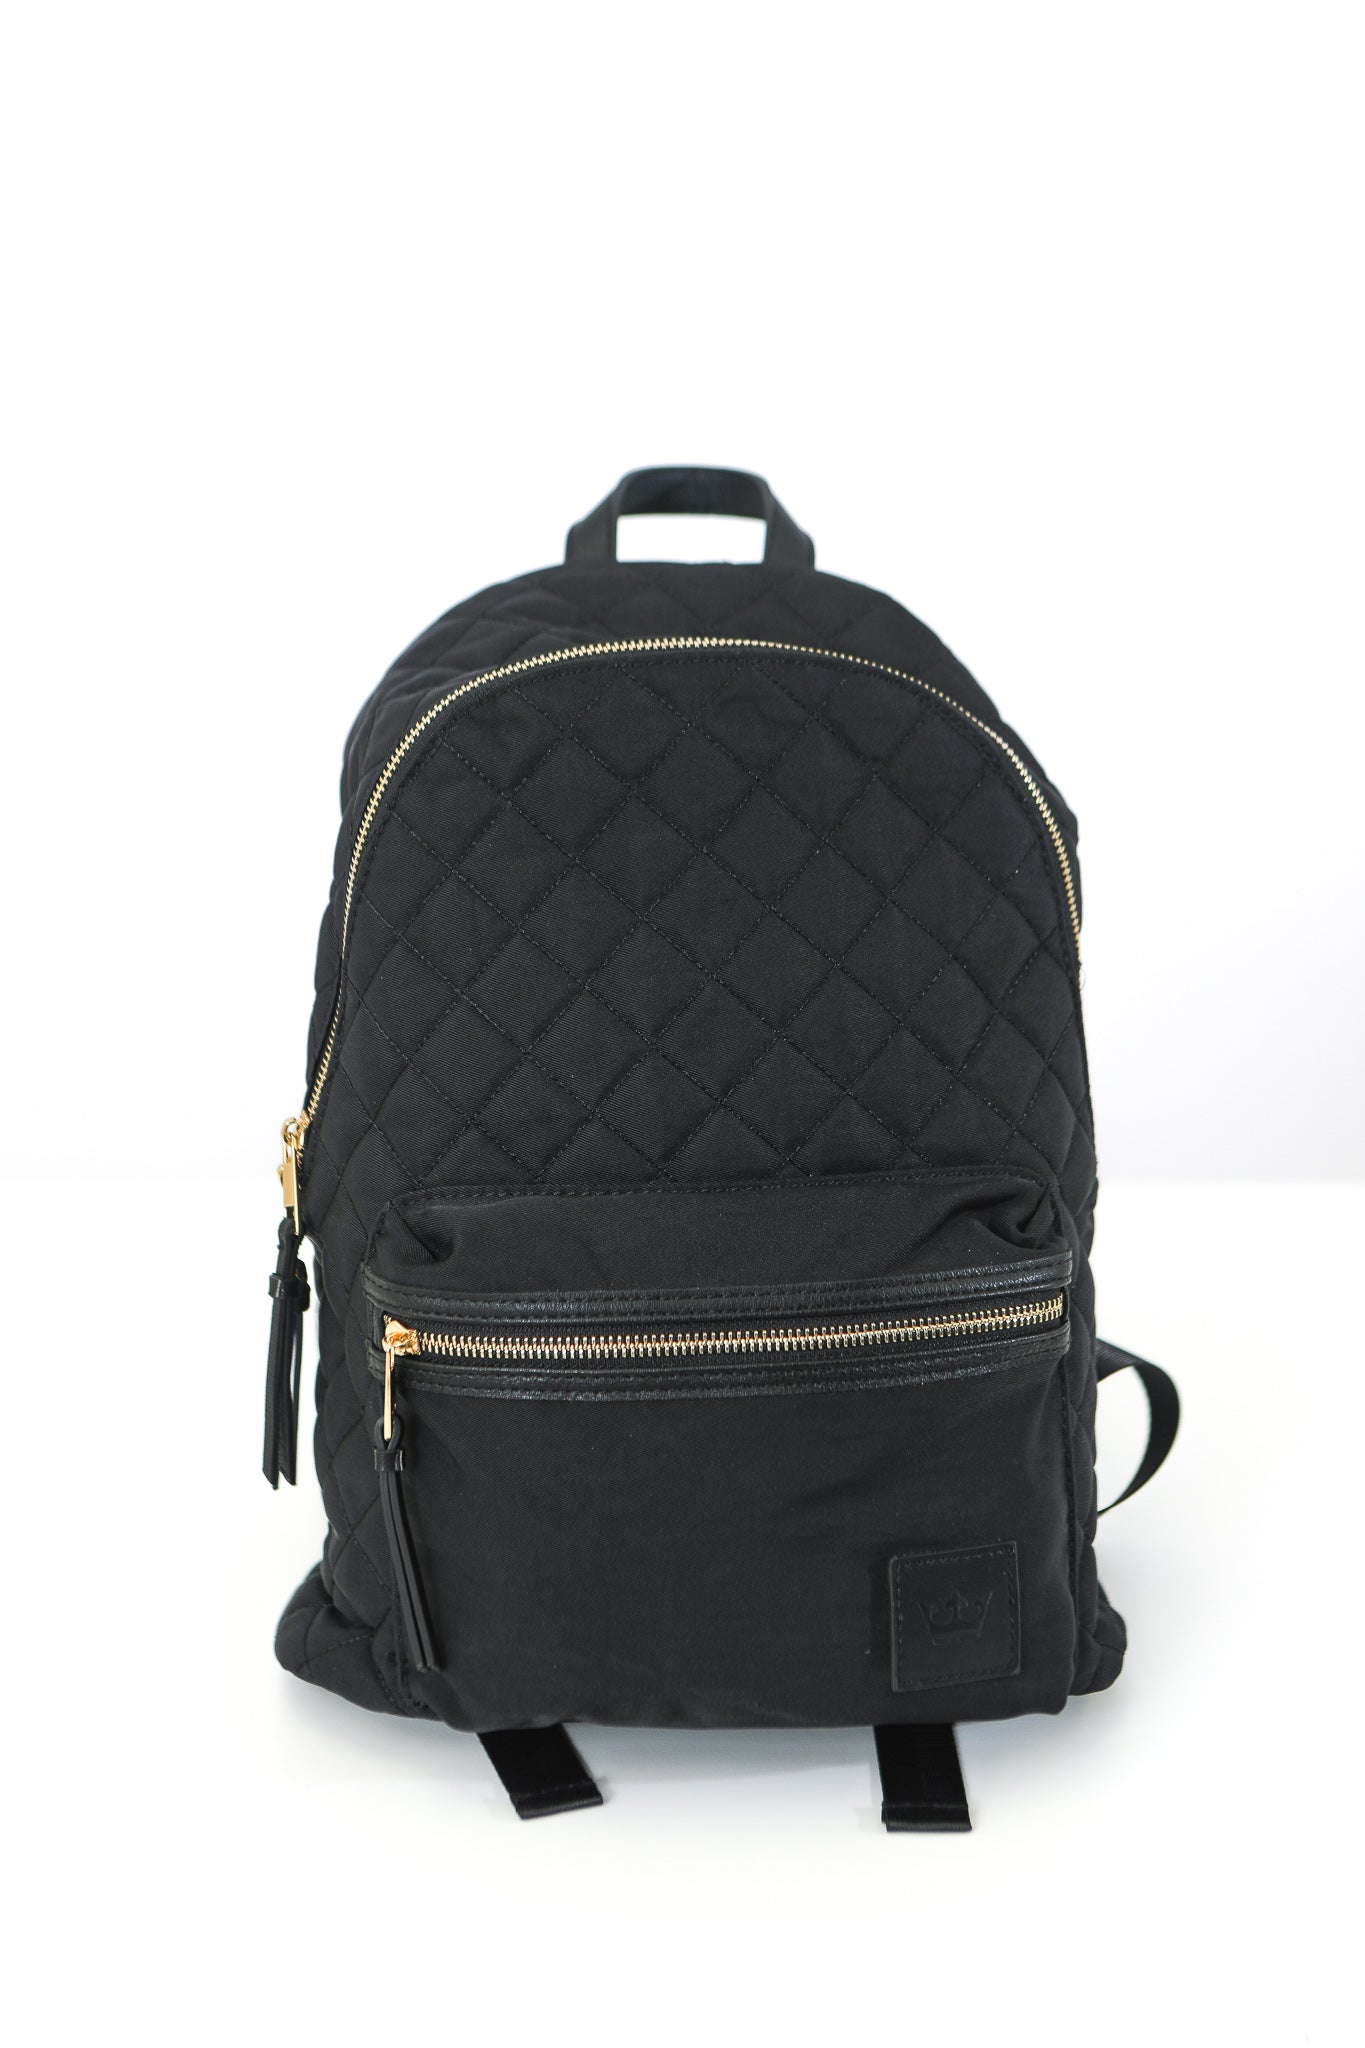 Back of black backpack with quilted pattern and gold zippers